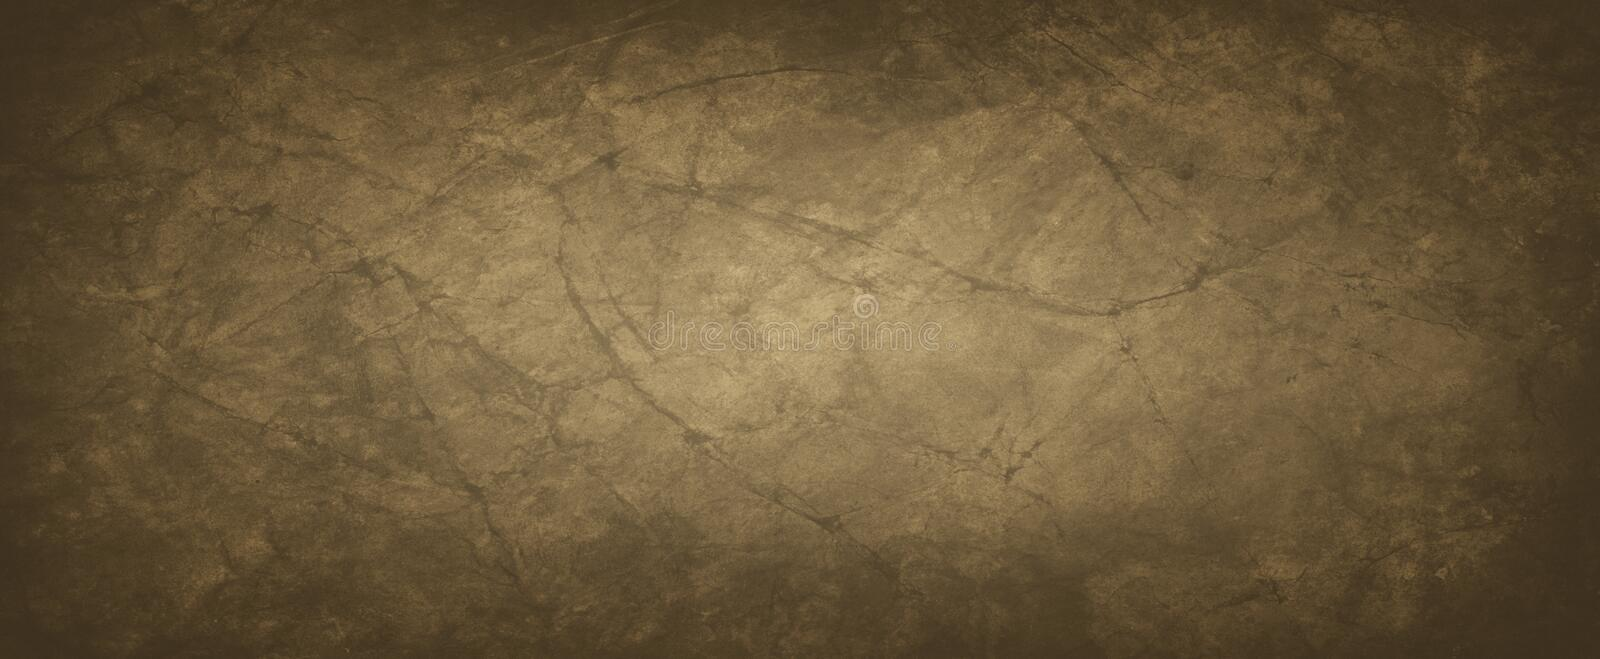 Brown background with crumpled or wrinkled paper texture in an old vintage design, dark coffee earthy and dirty color vector illustration